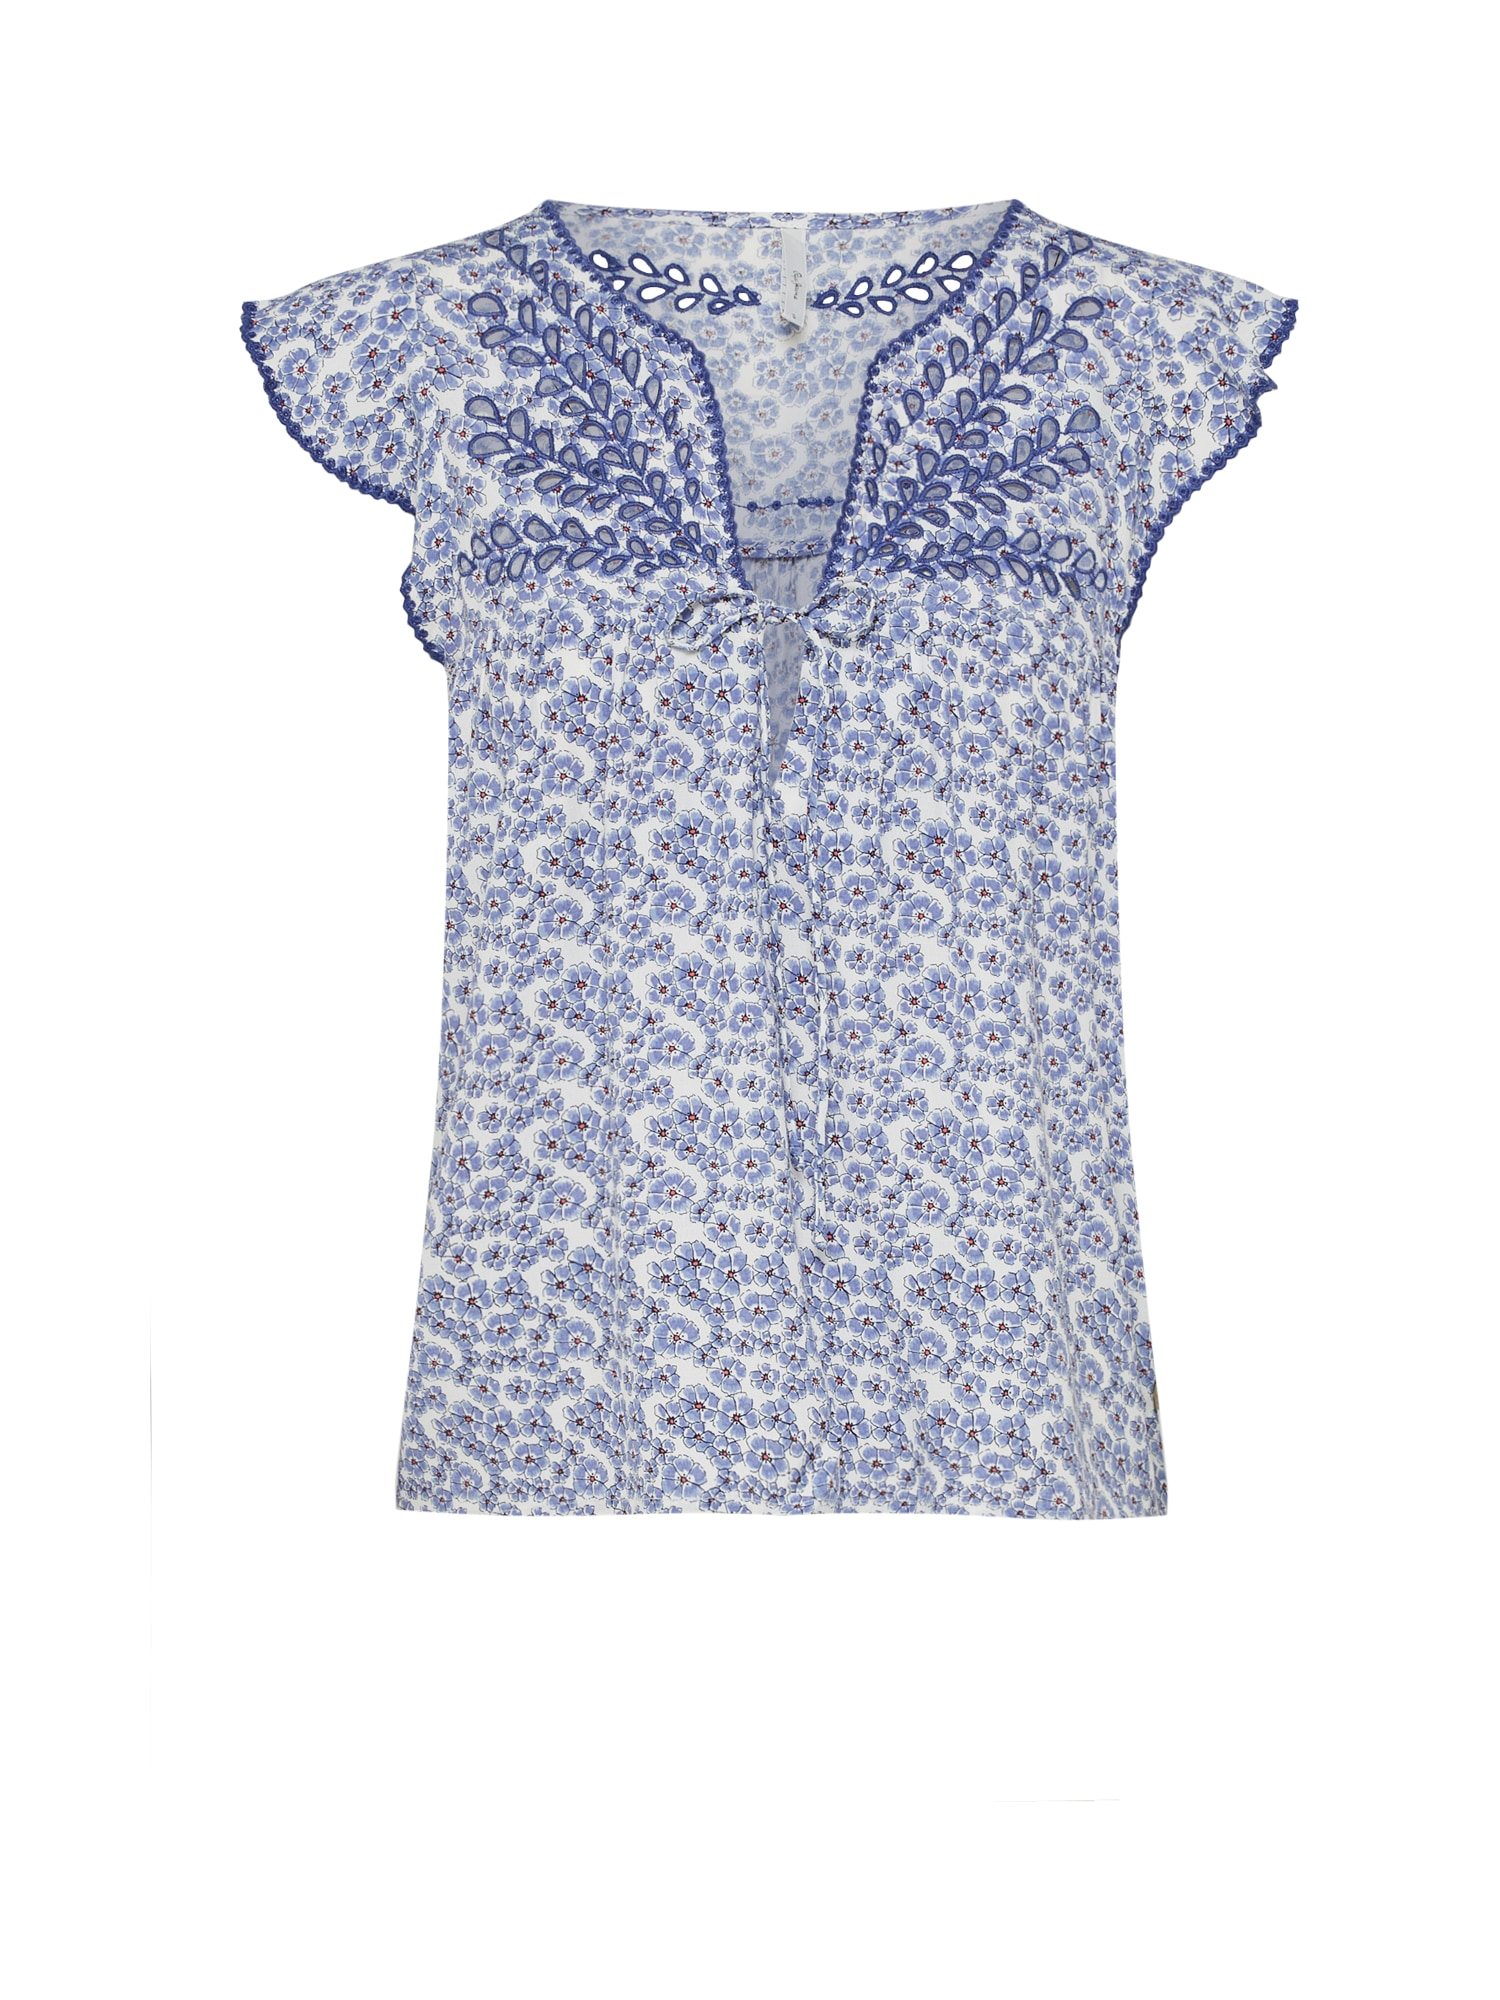 Pepe Jeans Dames Blouse COCO duifblauw wit